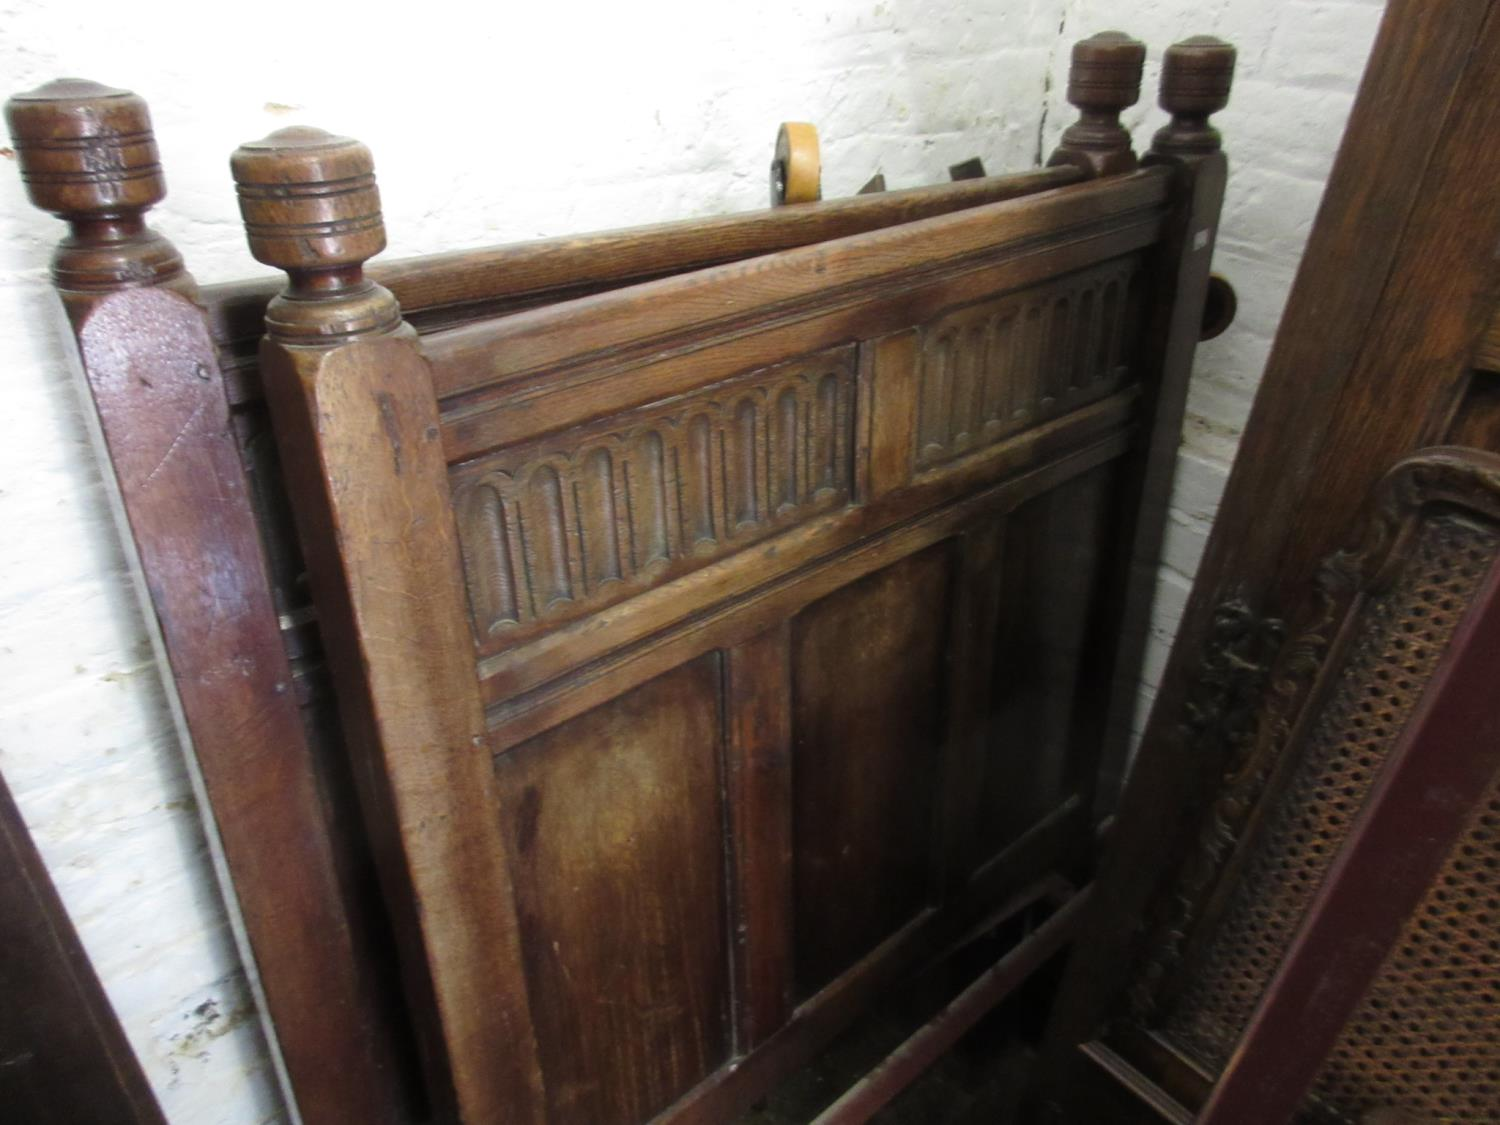 Pair of reproduction panelled oak single bedsteads in 17th Century style Headboards - 36.5ins wide x